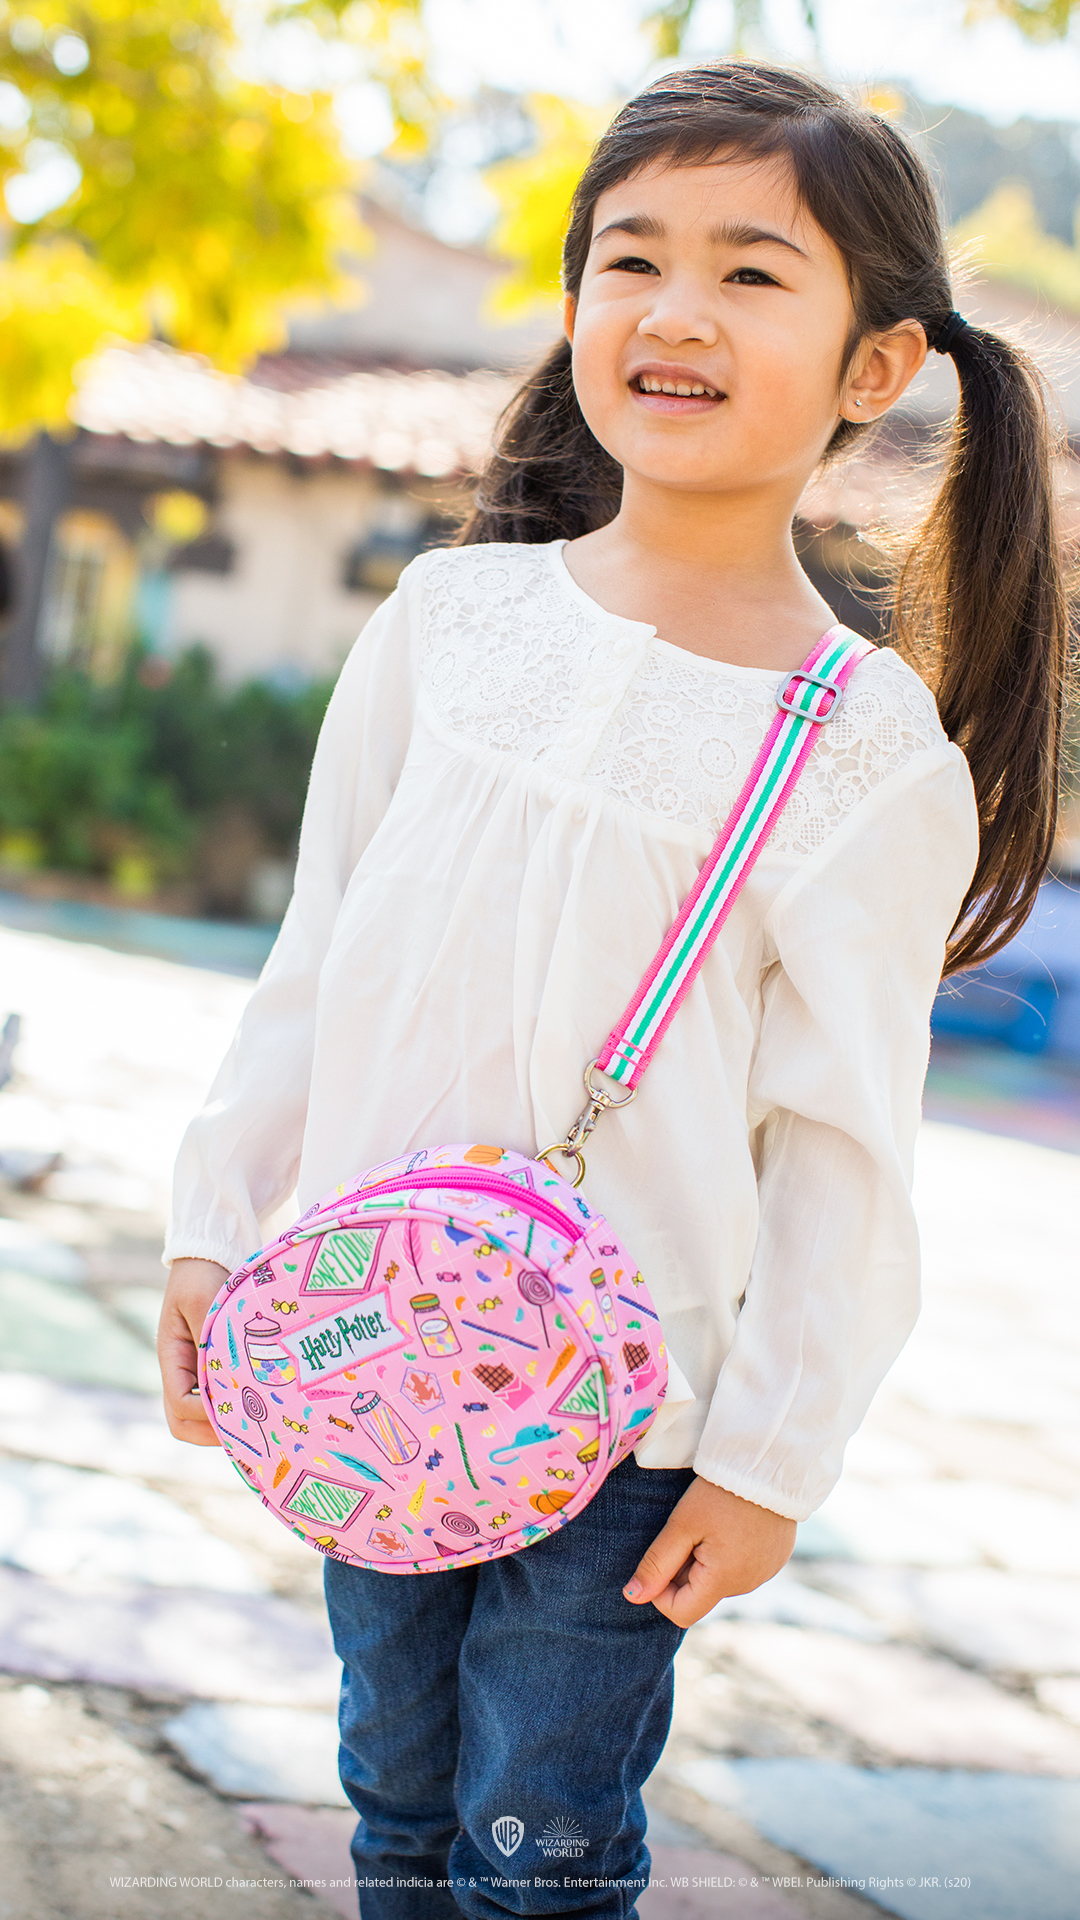 The crossbody purse features a bubblegum and peppermint strap.